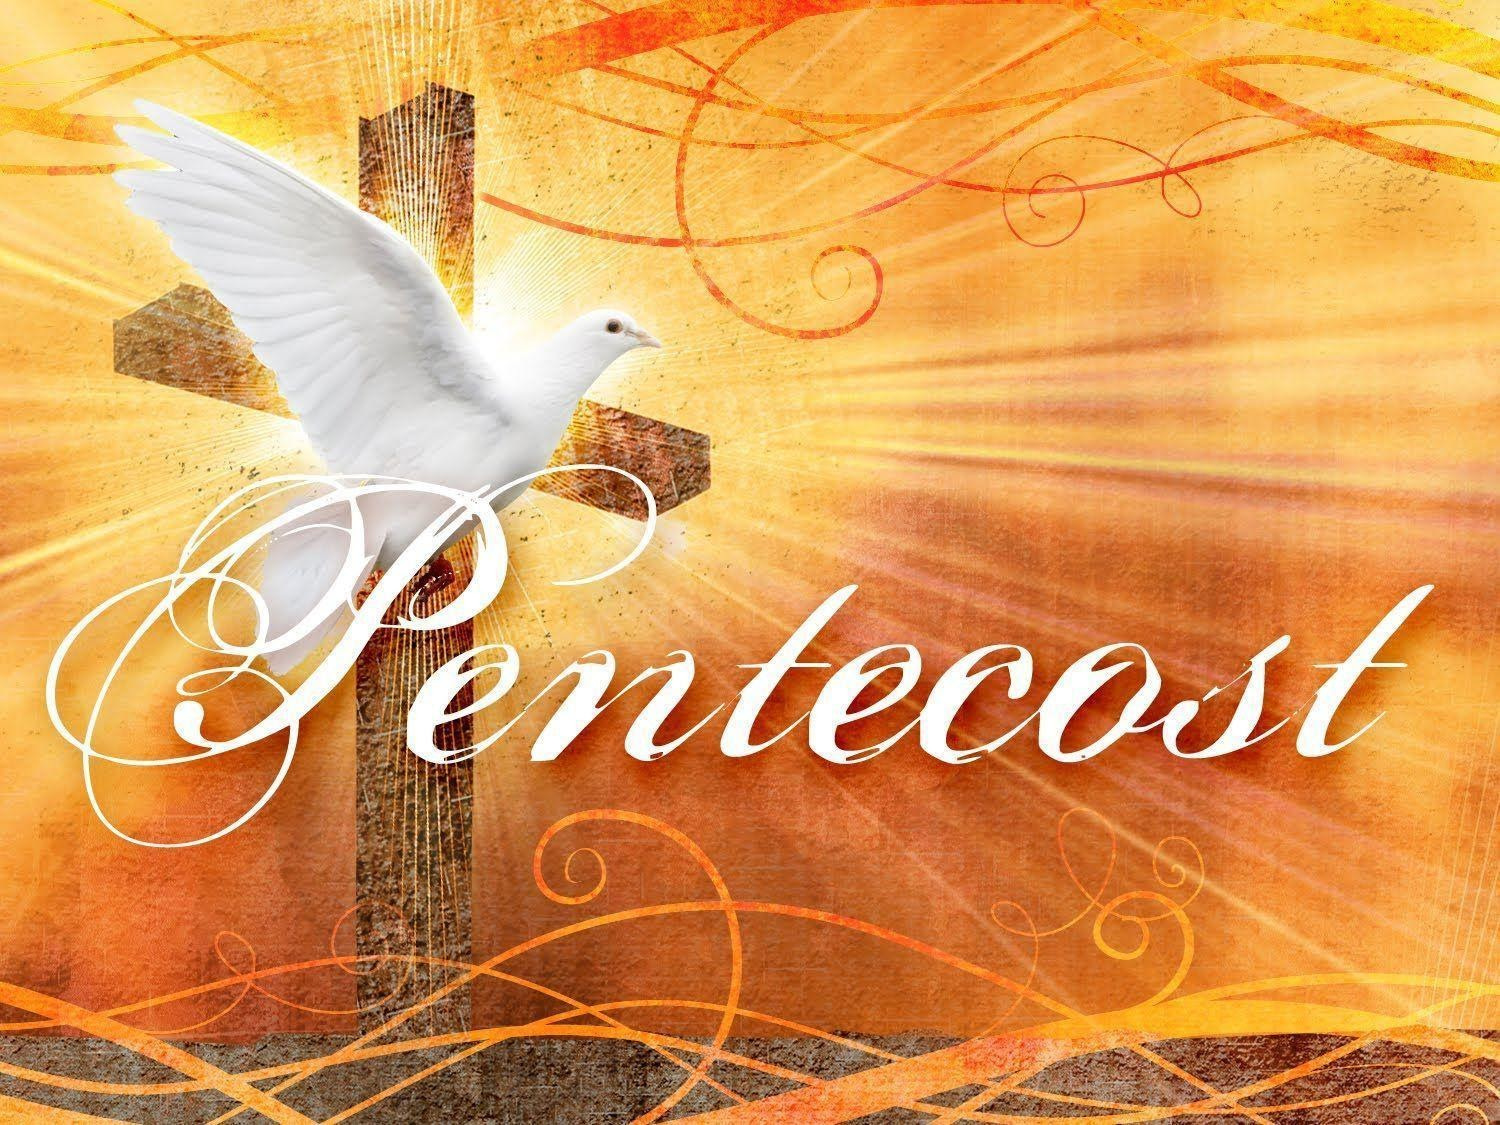 """An image of a wooden Cross with swirls of red and orange coming from the image. A picture of a dove flying is in front of the Cross with the text """"Paentecost"""" in the foreground."""